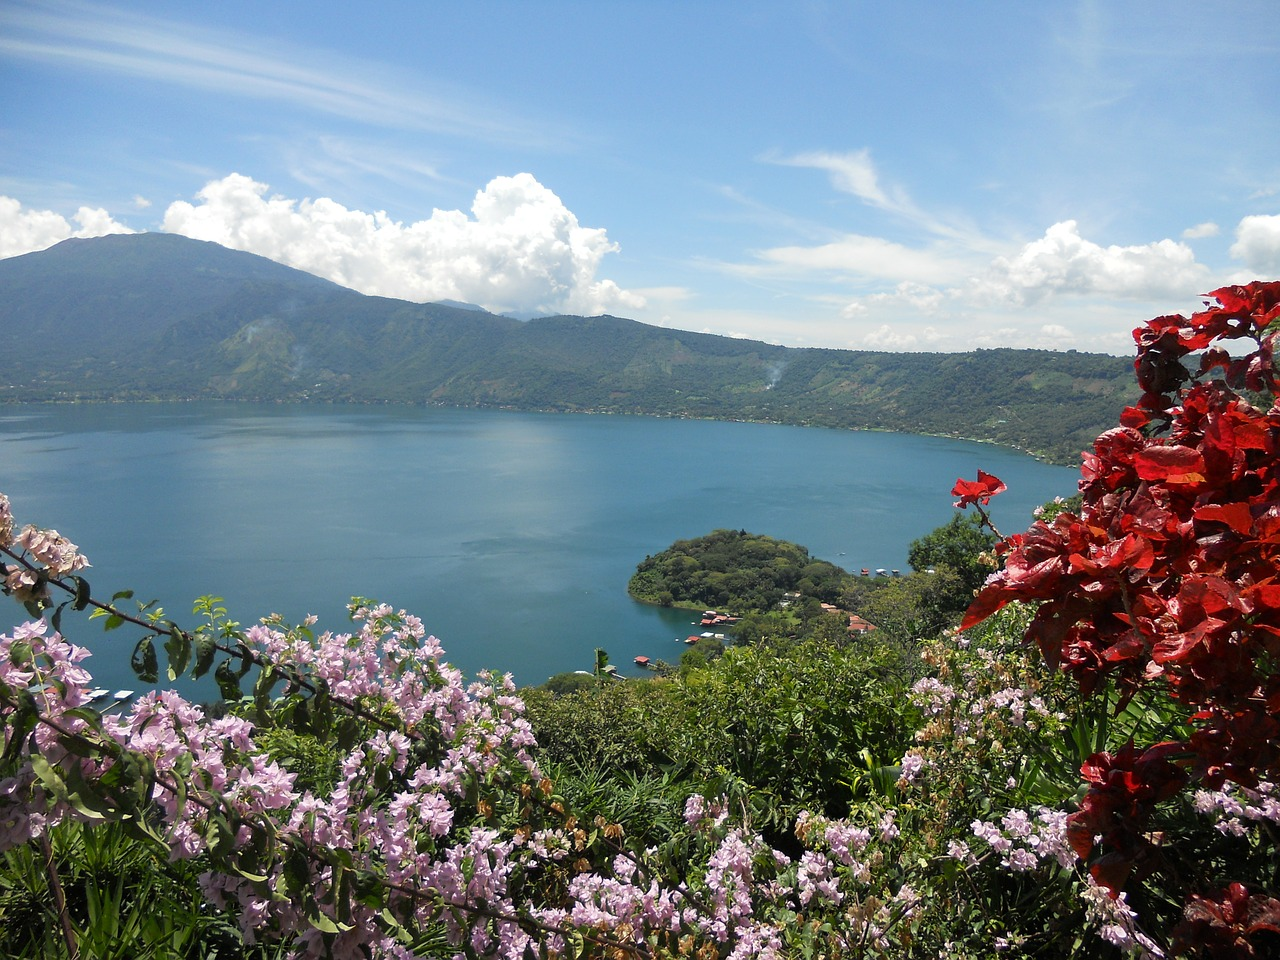 Coatepeque lake